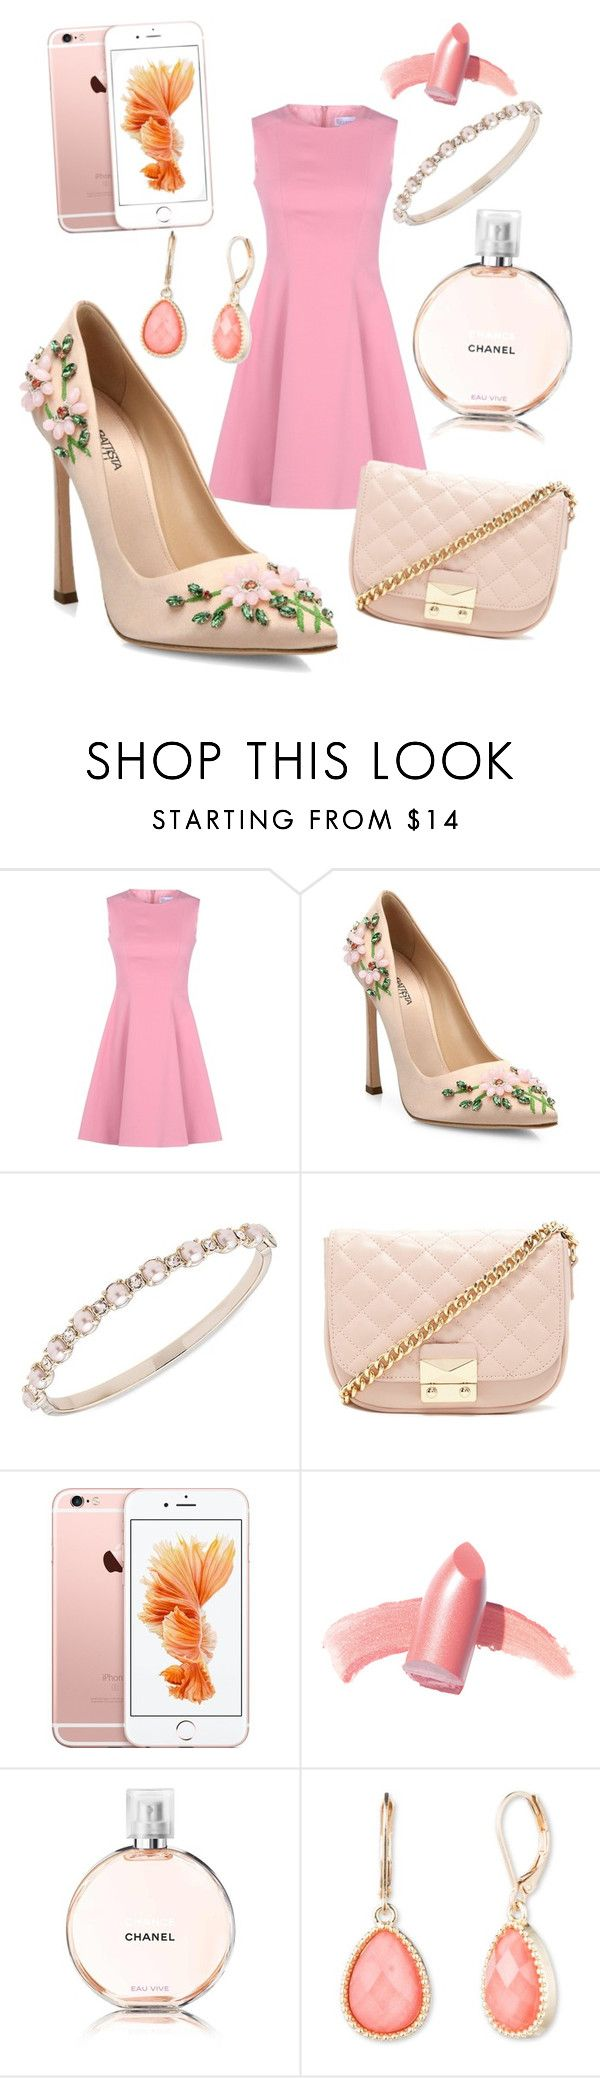 """""""pink"""" by hesterstan ❤ liked on Polyvore featuring RED Valentino, Giambattista Valli, Marchesa, Forever 21, Elizabeth Arden, Chanel and Vintage America"""